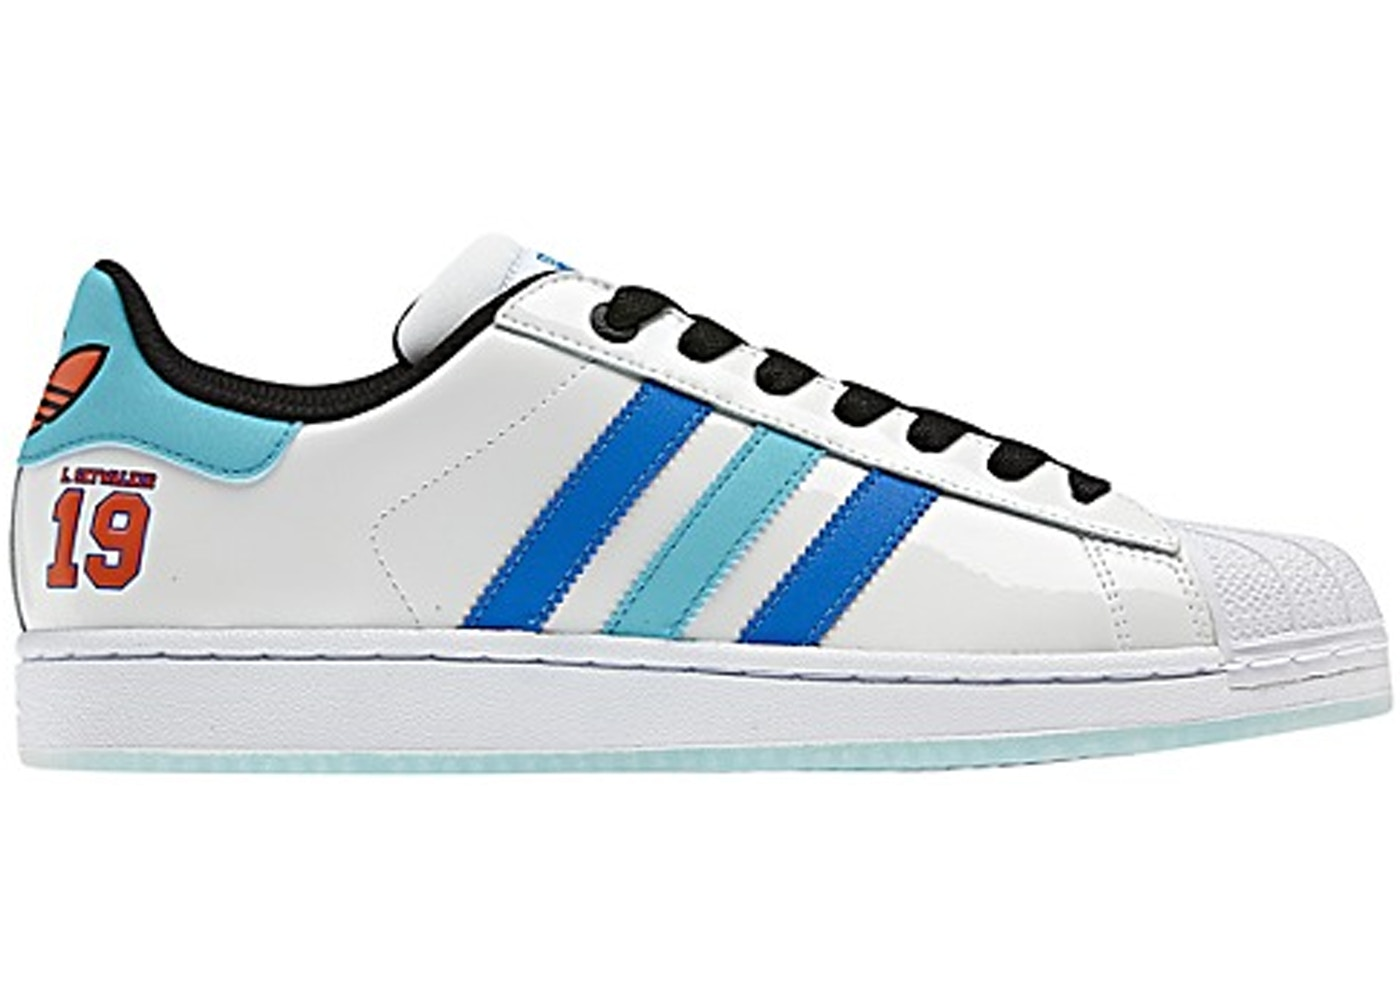 hot sales 8d475 12bfa adidas Superstar 2 Star Wars Hoth Alliance